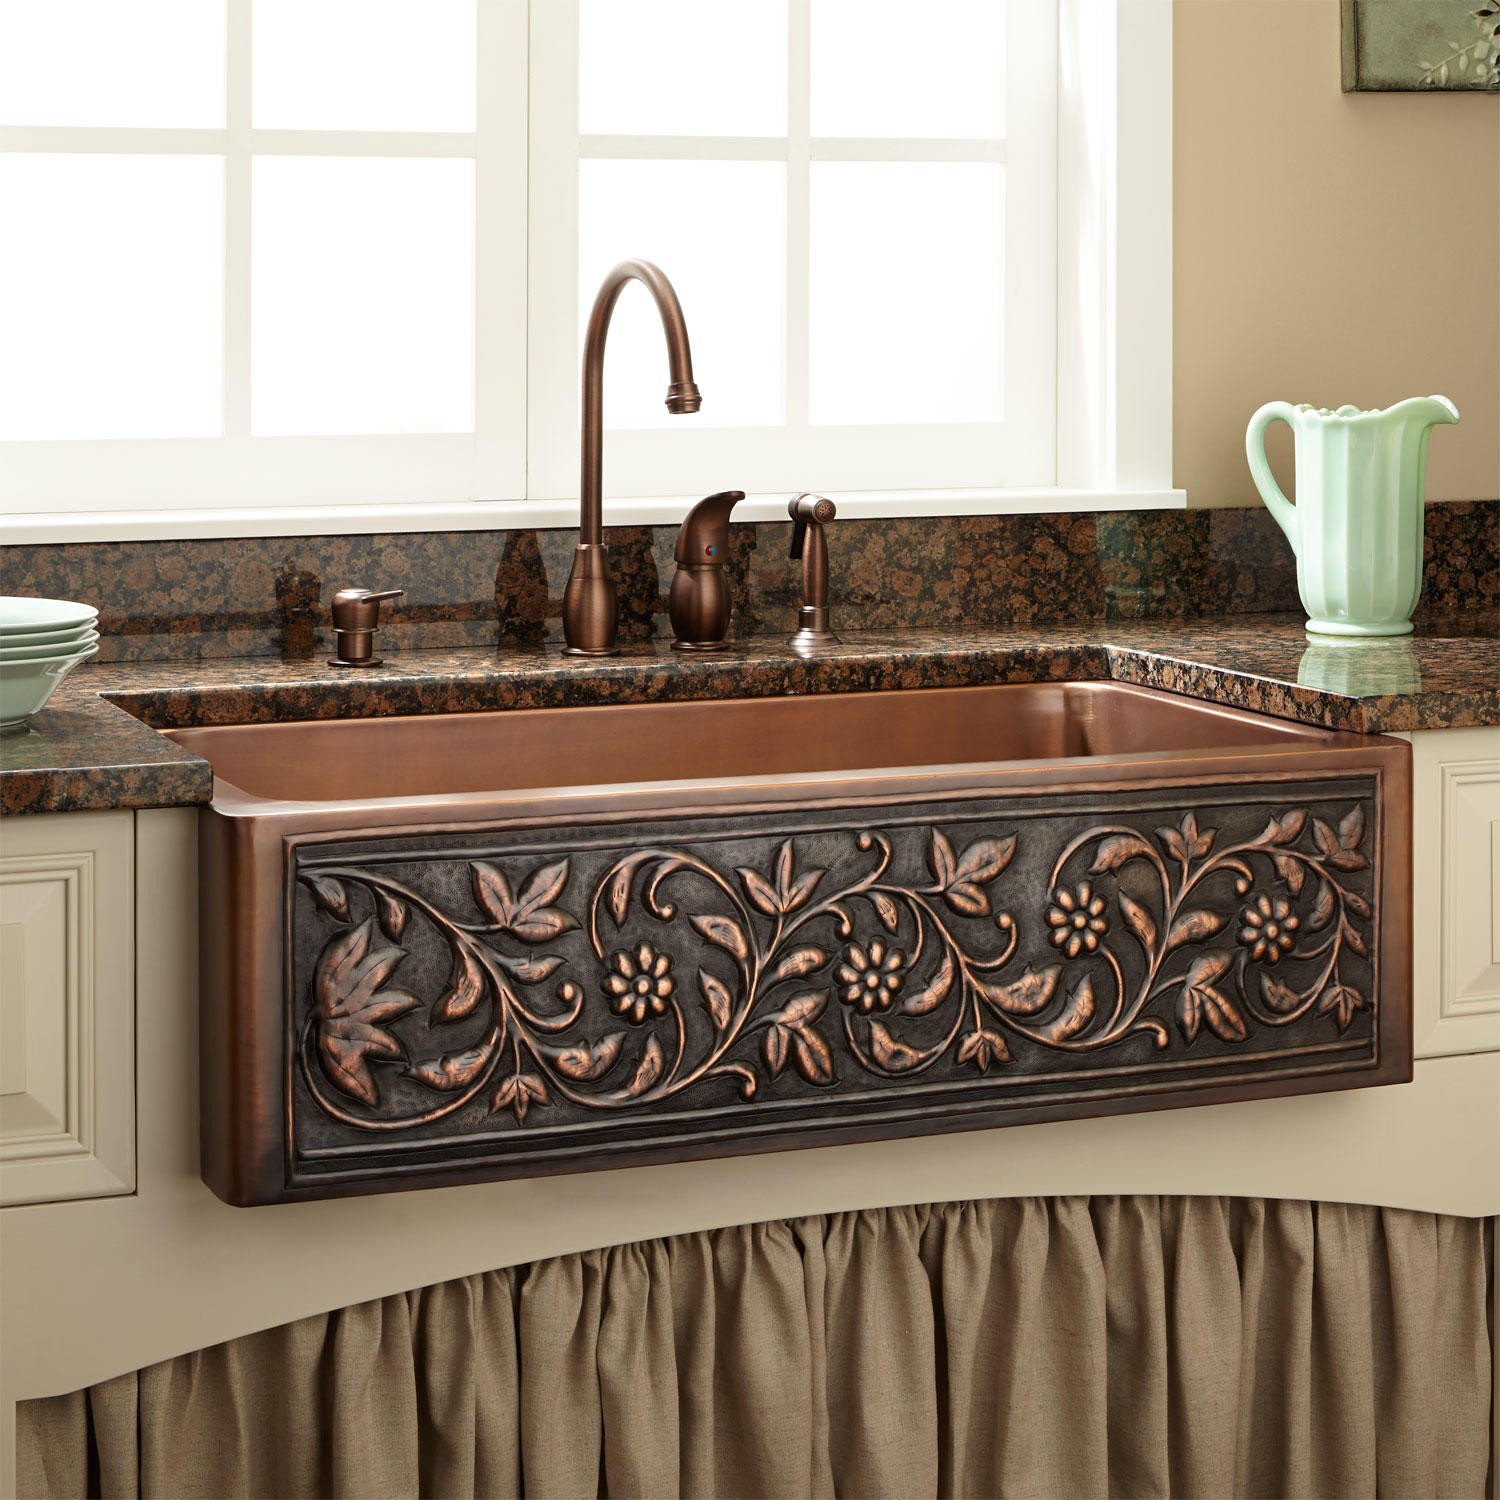 Image of: Copper Kitchen Sink